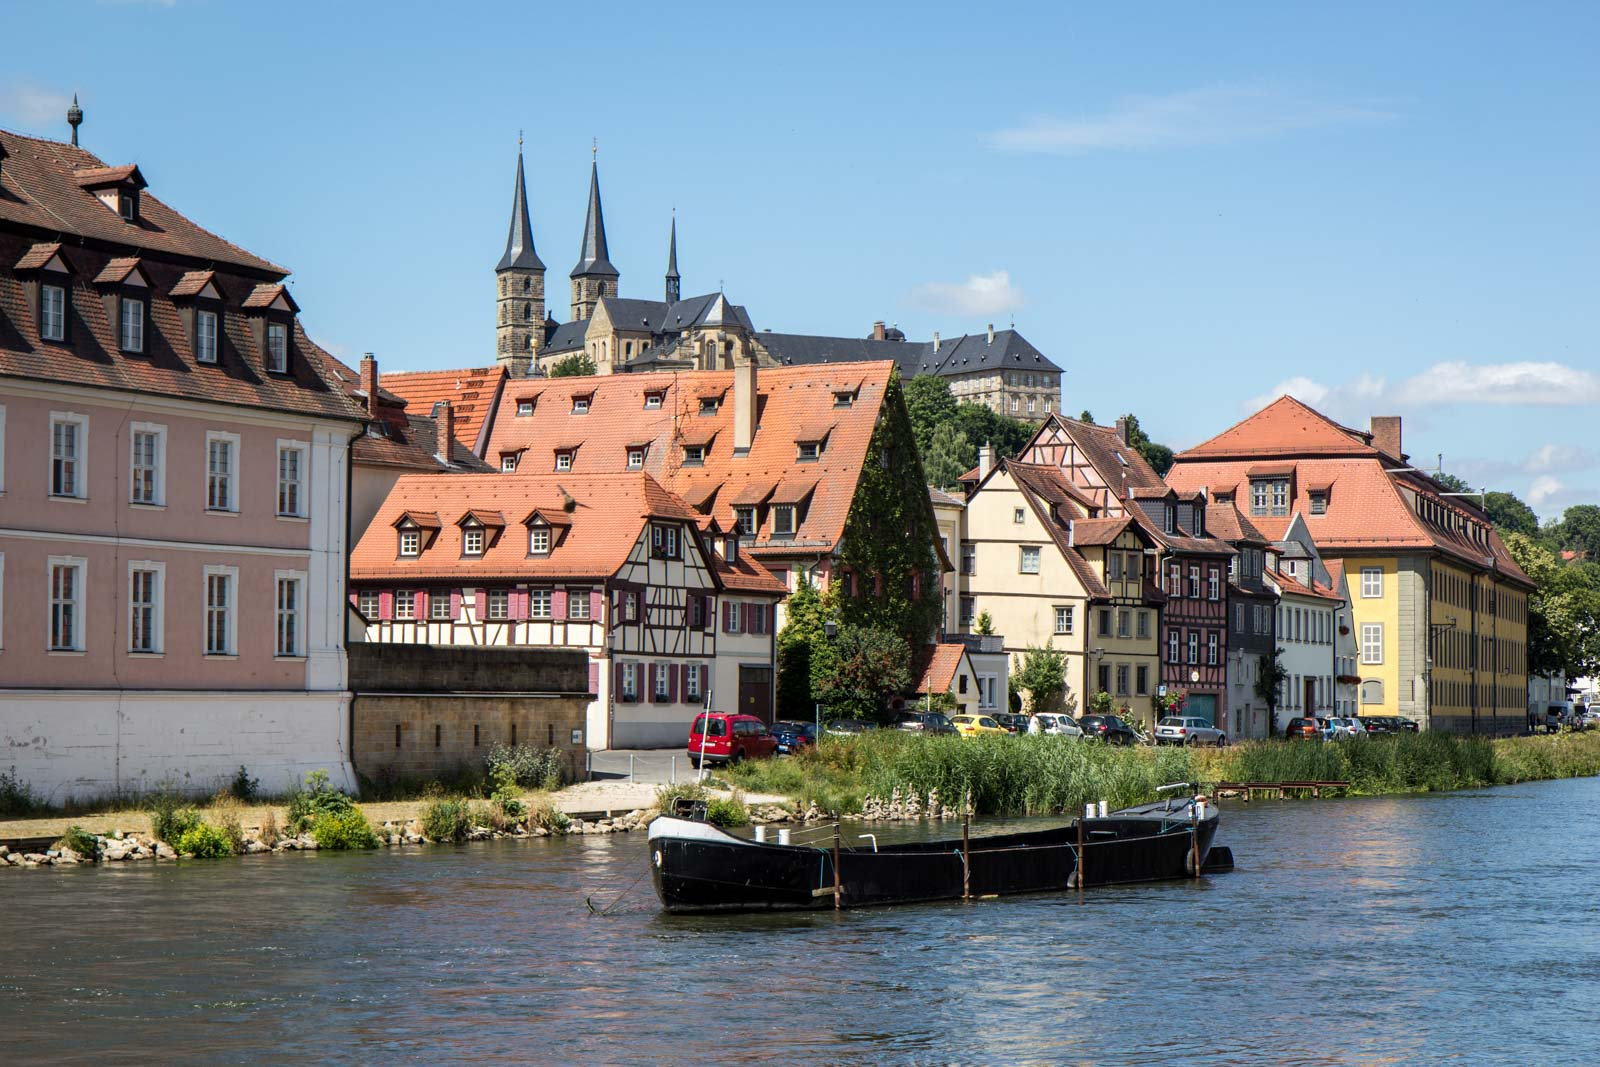 Town of Bamberg, Germany, World Heritage Site